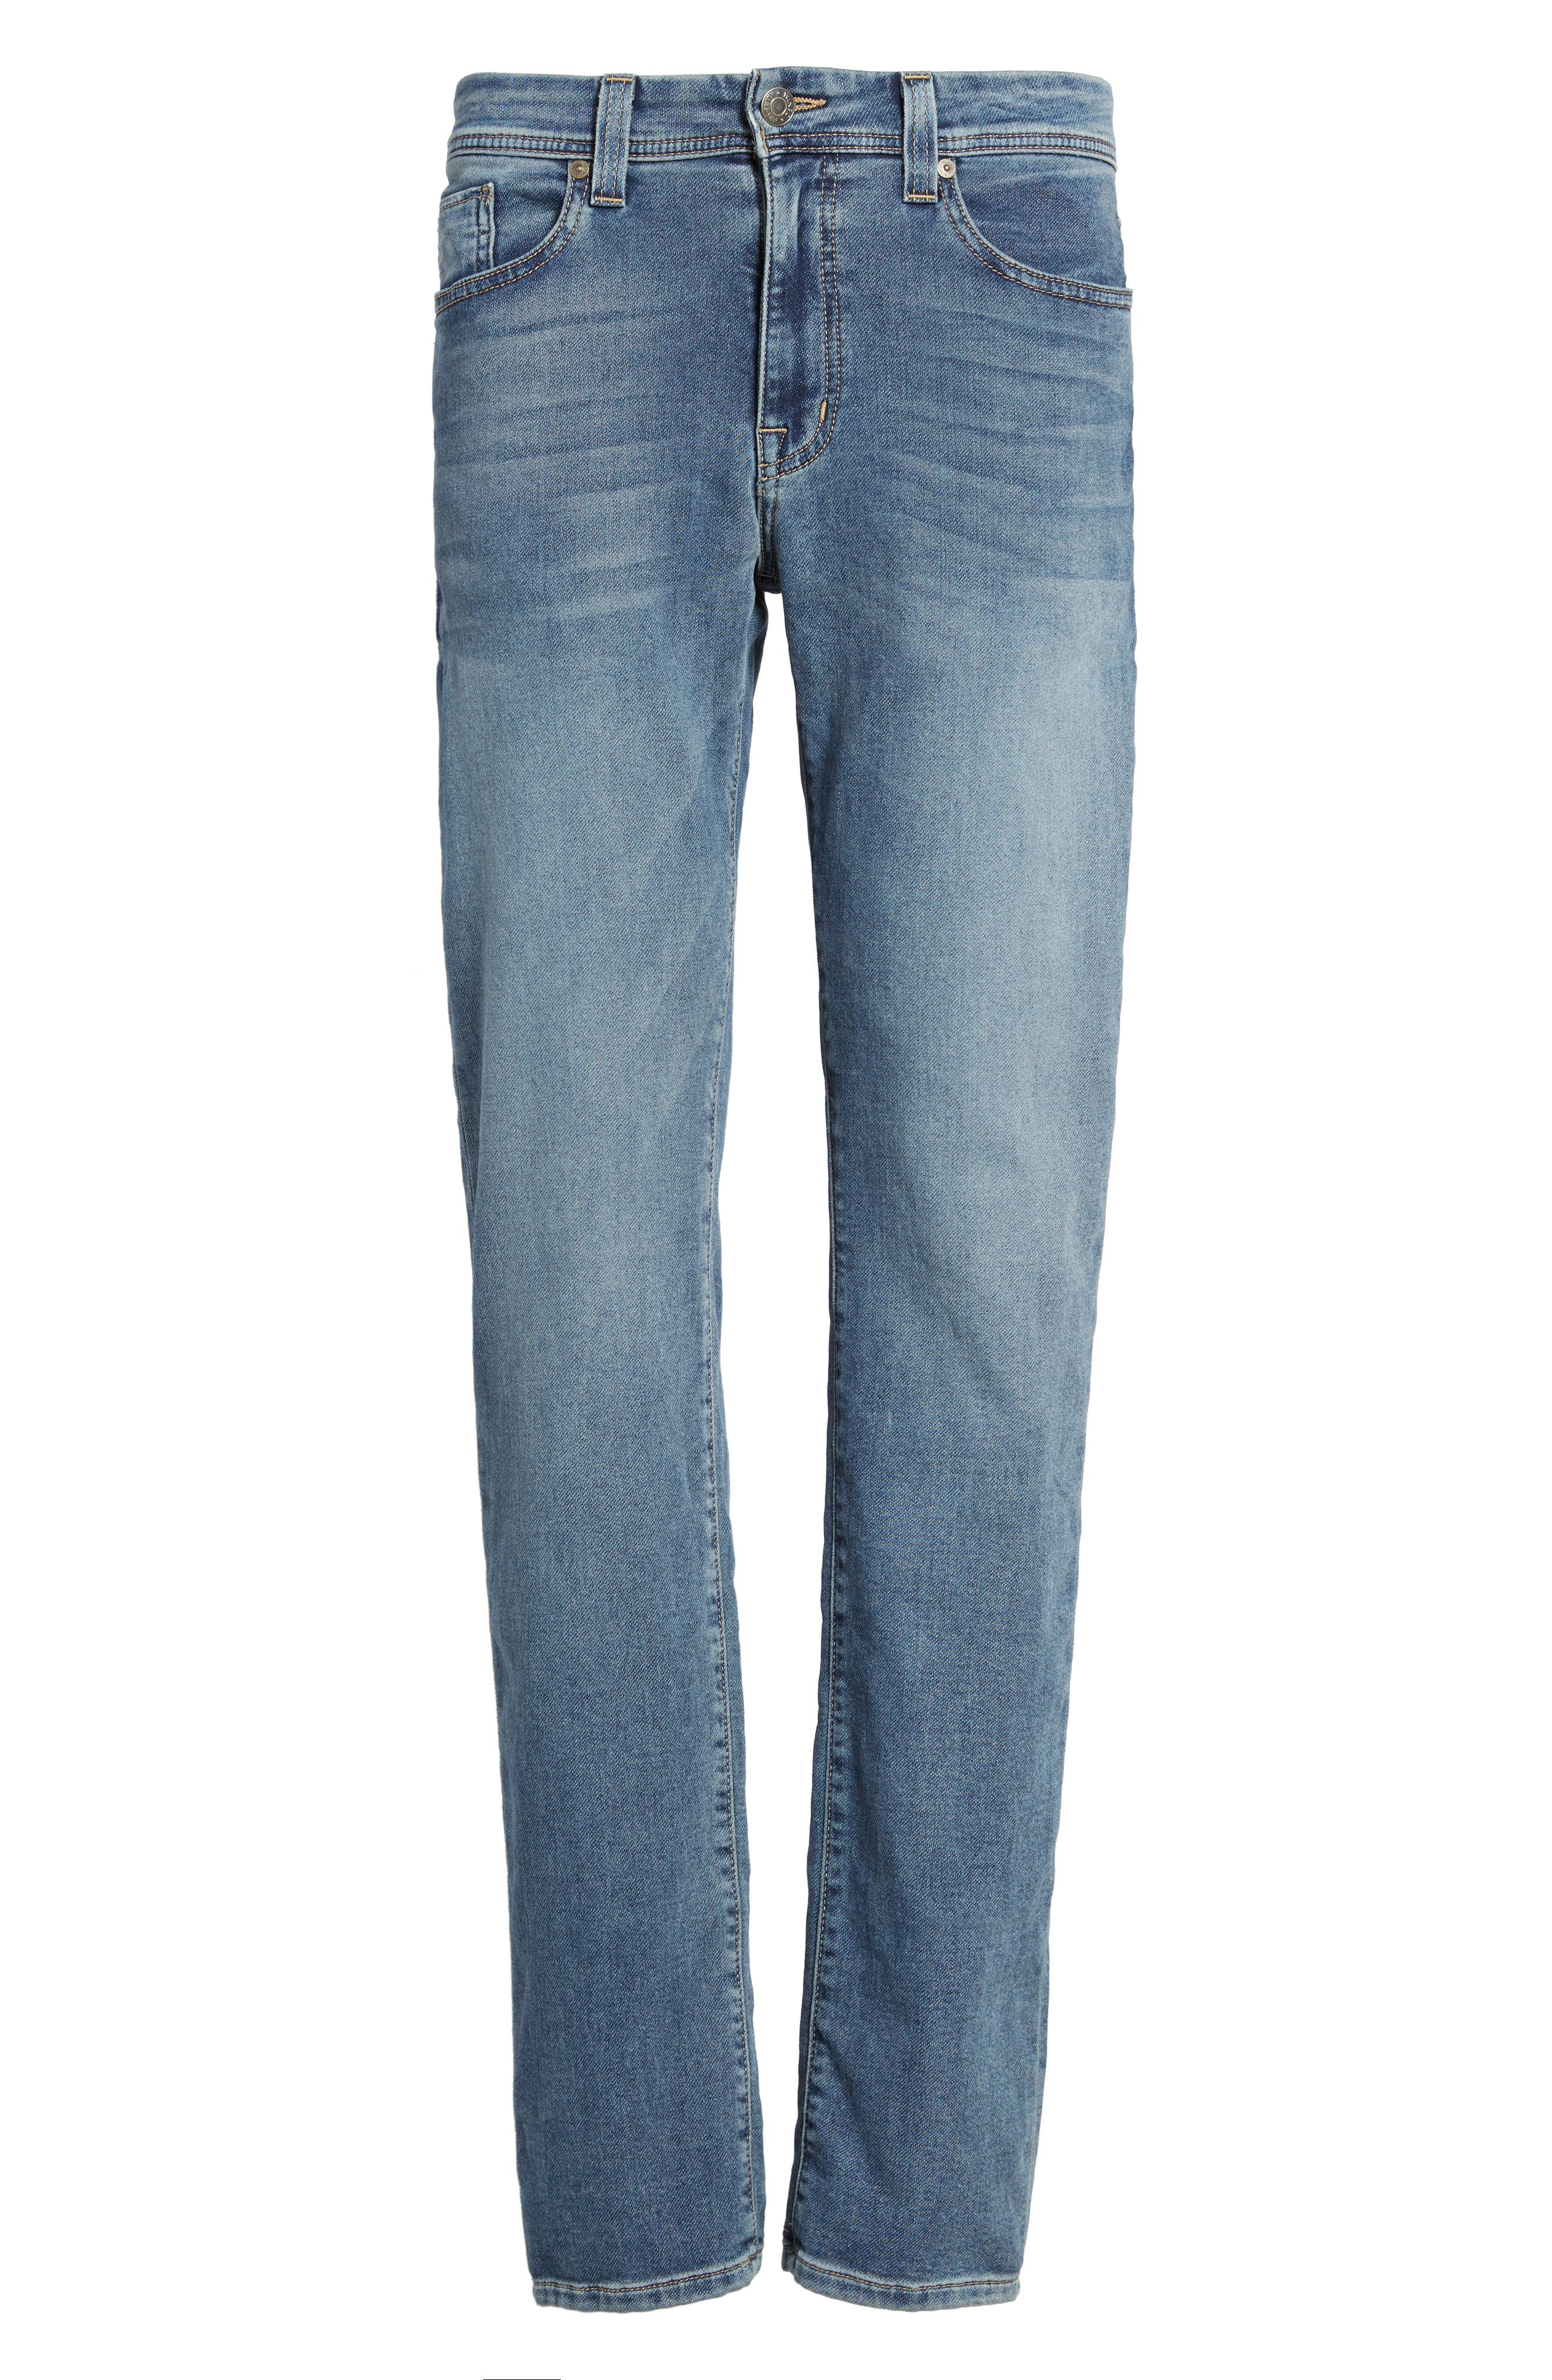 Jimmy Slim Straight Leg Jeans,                             Alternate thumbnail 6, color,                             Oxy Vox Vintage